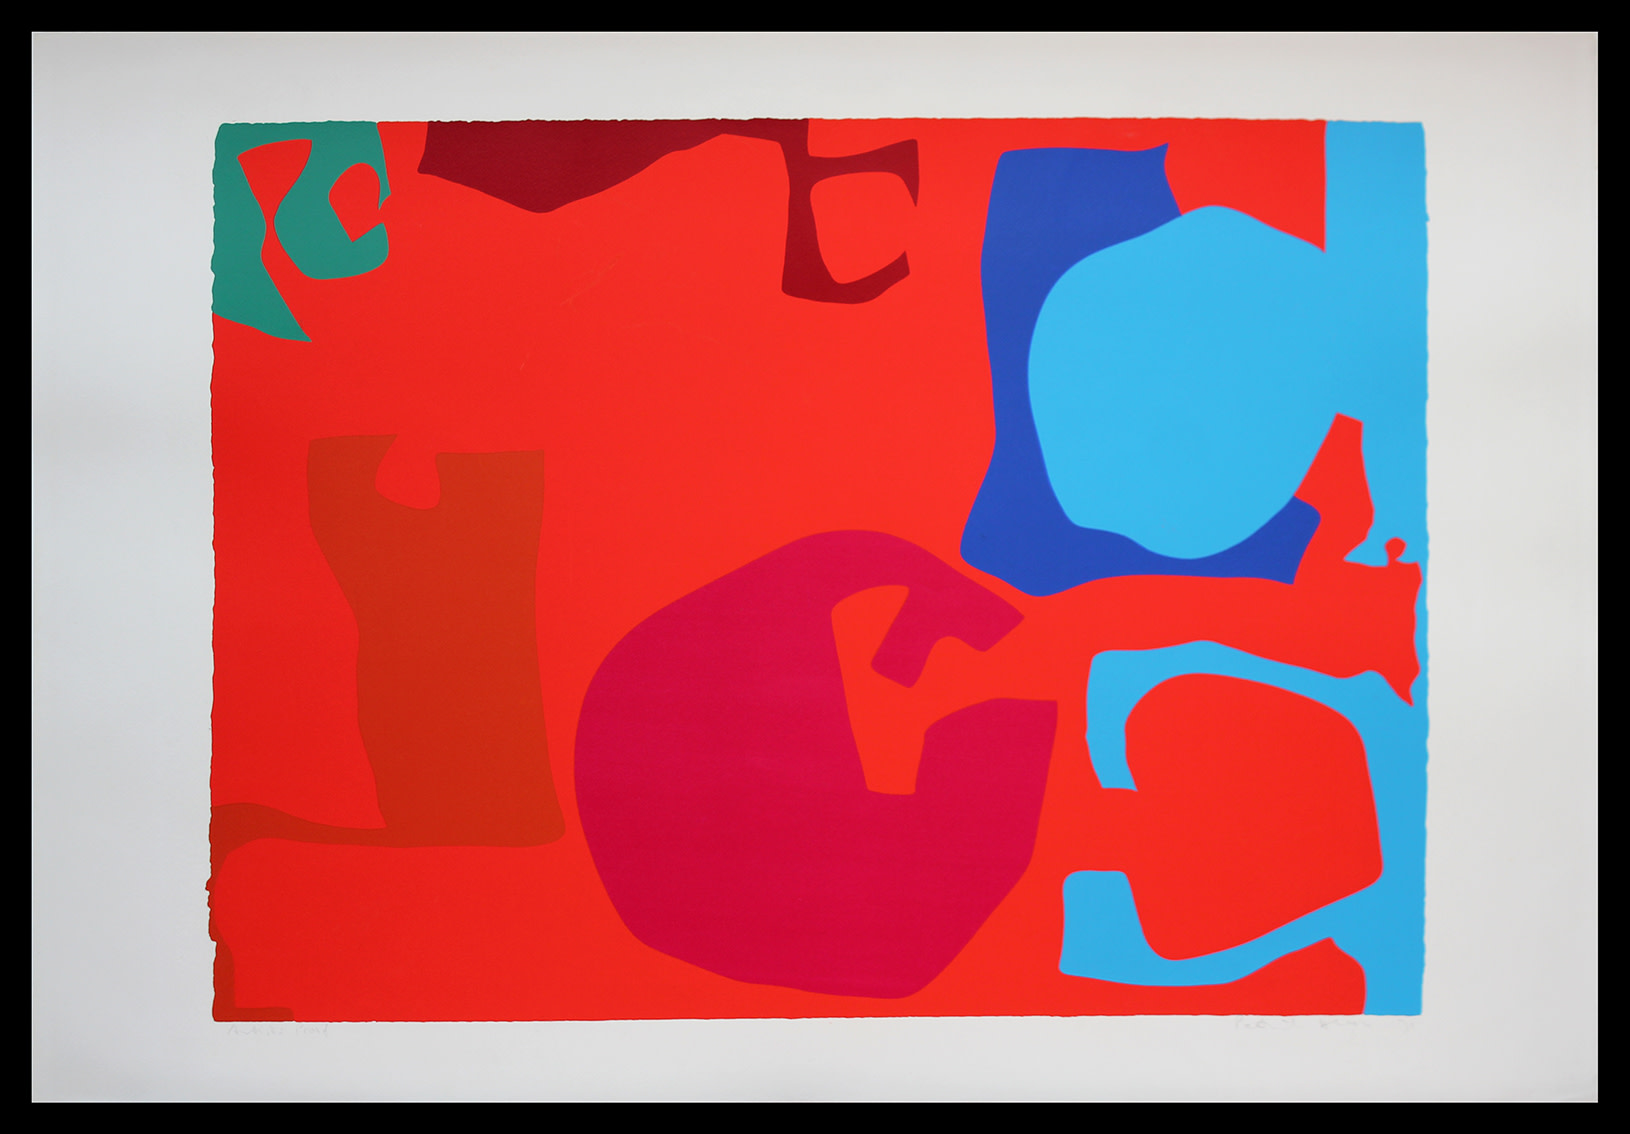 "<span class=""link fancybox-details-link""><a href=""/artists/93-patrick-heron-cbe/works/3971-patrick-heron-cbe-untitled-1971/"">View Detail Page</a></span><div class=""artist""><strong>Patrick Heron CBE</strong></div> 1920 – 1999 <div class=""title"">Untitled, 1971</div> <div class=""signed_and_dated"">signed and dated '71' in pencil</div> <div class=""medium"">silkscreen print in colours on wove paper, with full margins, <br /> </div> <div class=""dimensions"">image: 59 x 79 cm (23 2/8 x 31 1/8 in.)<br /> sheet: 71 x 102 cm (28 x 40 1/8 in.)</div> <div class=""edition_details"">Artist's Proof aside from the edition of 75</div><div class=""copyright_line"">© The Estate of Patrick Heron</div>"